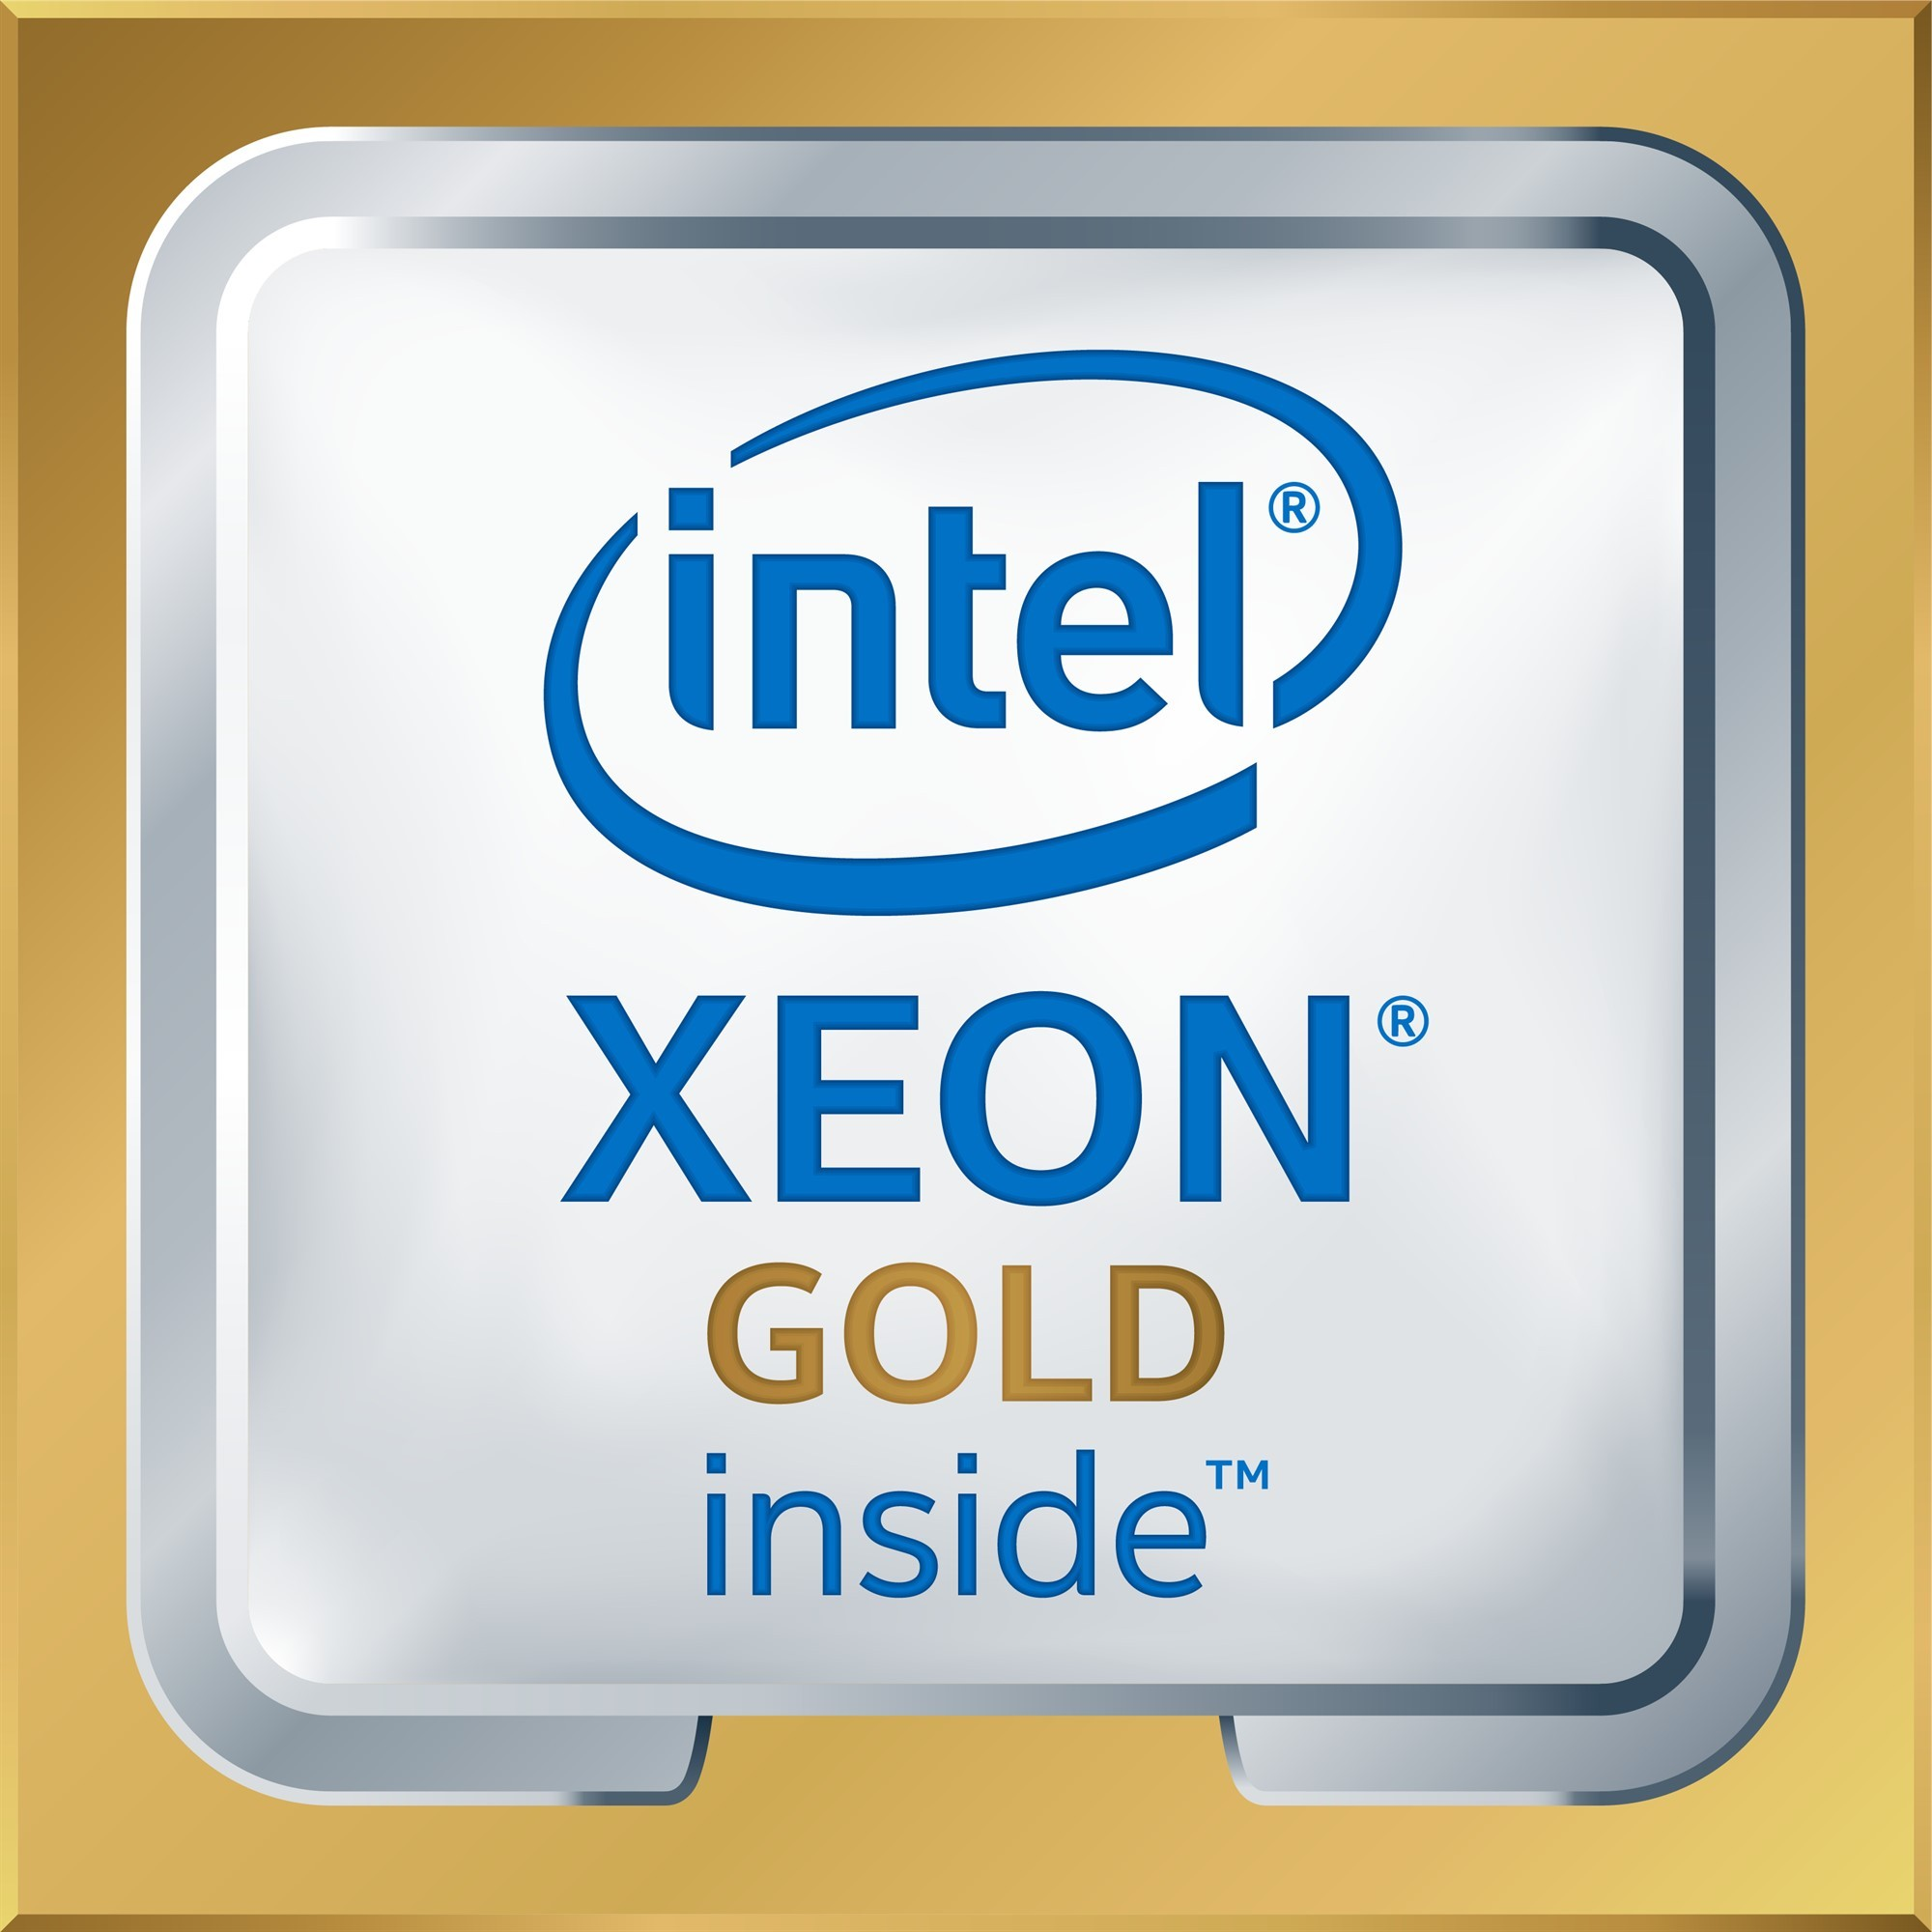 INTEL XEON GOLD 5115 PROCESSOR (13.75M CACHE, 2.40 GHZ) 2.40GHZ 13.75MB L3